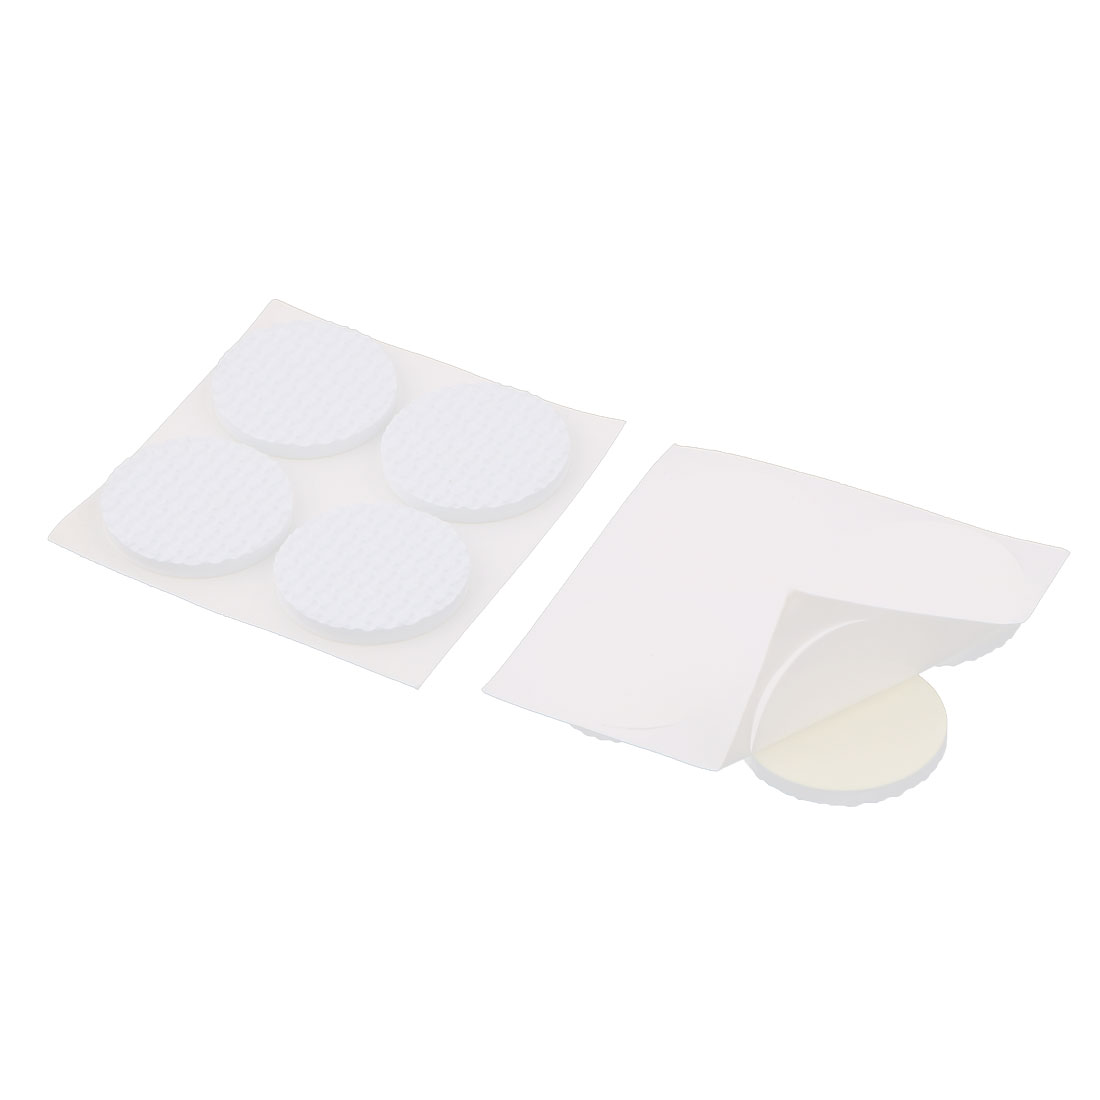 Home Round Design Table Chair Furniture Foot Protection Pad White 8 Pcs